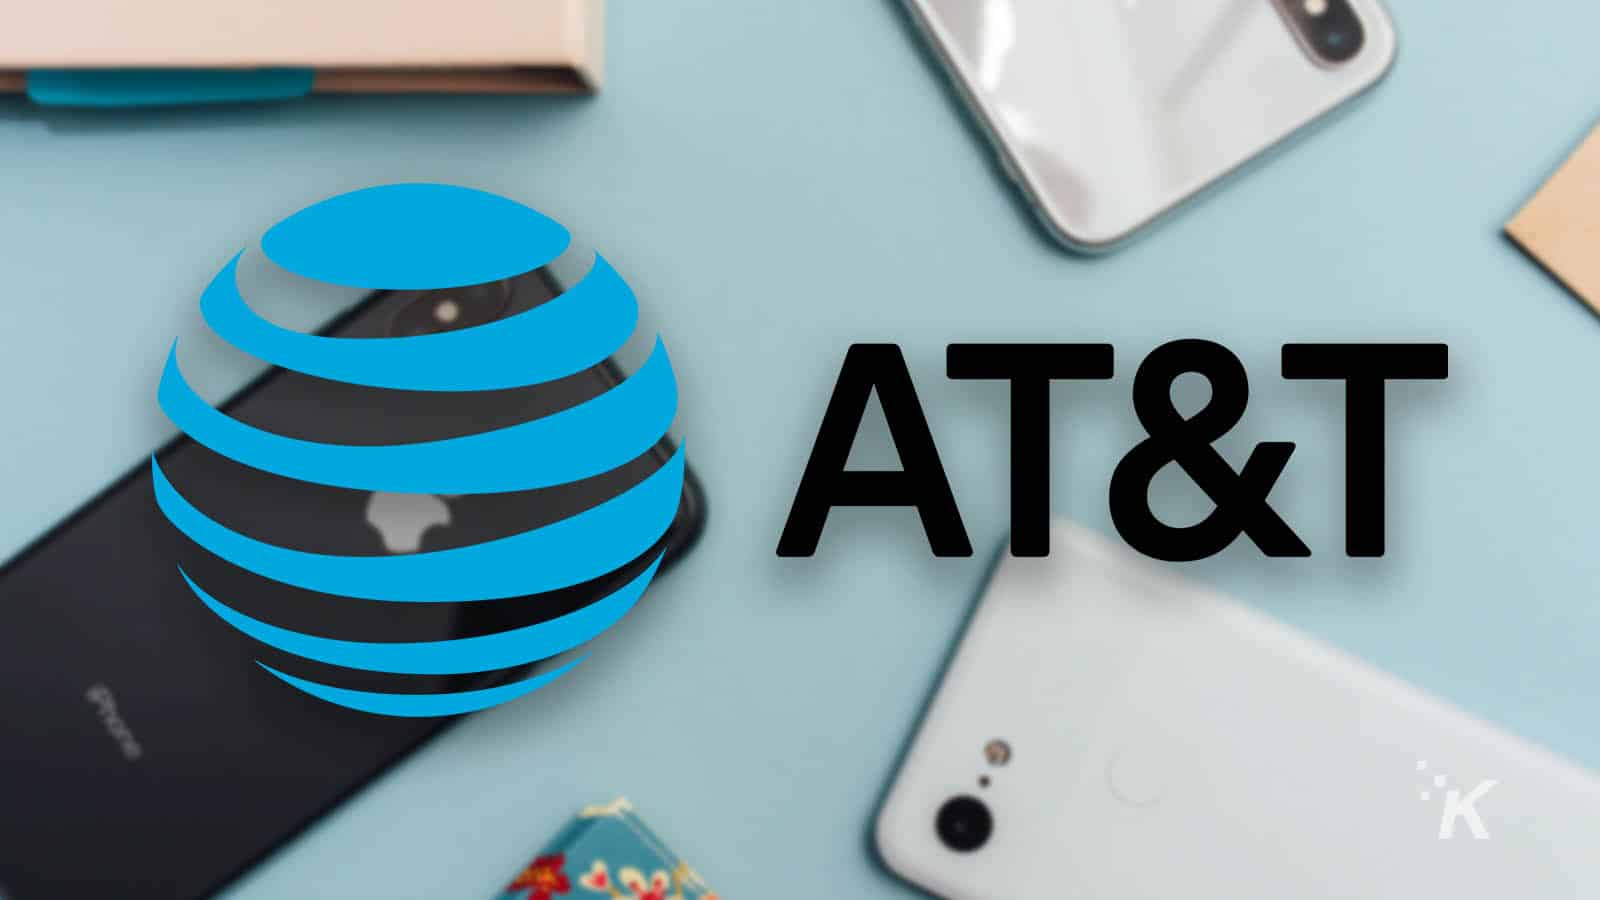 at&t logo and blurred background